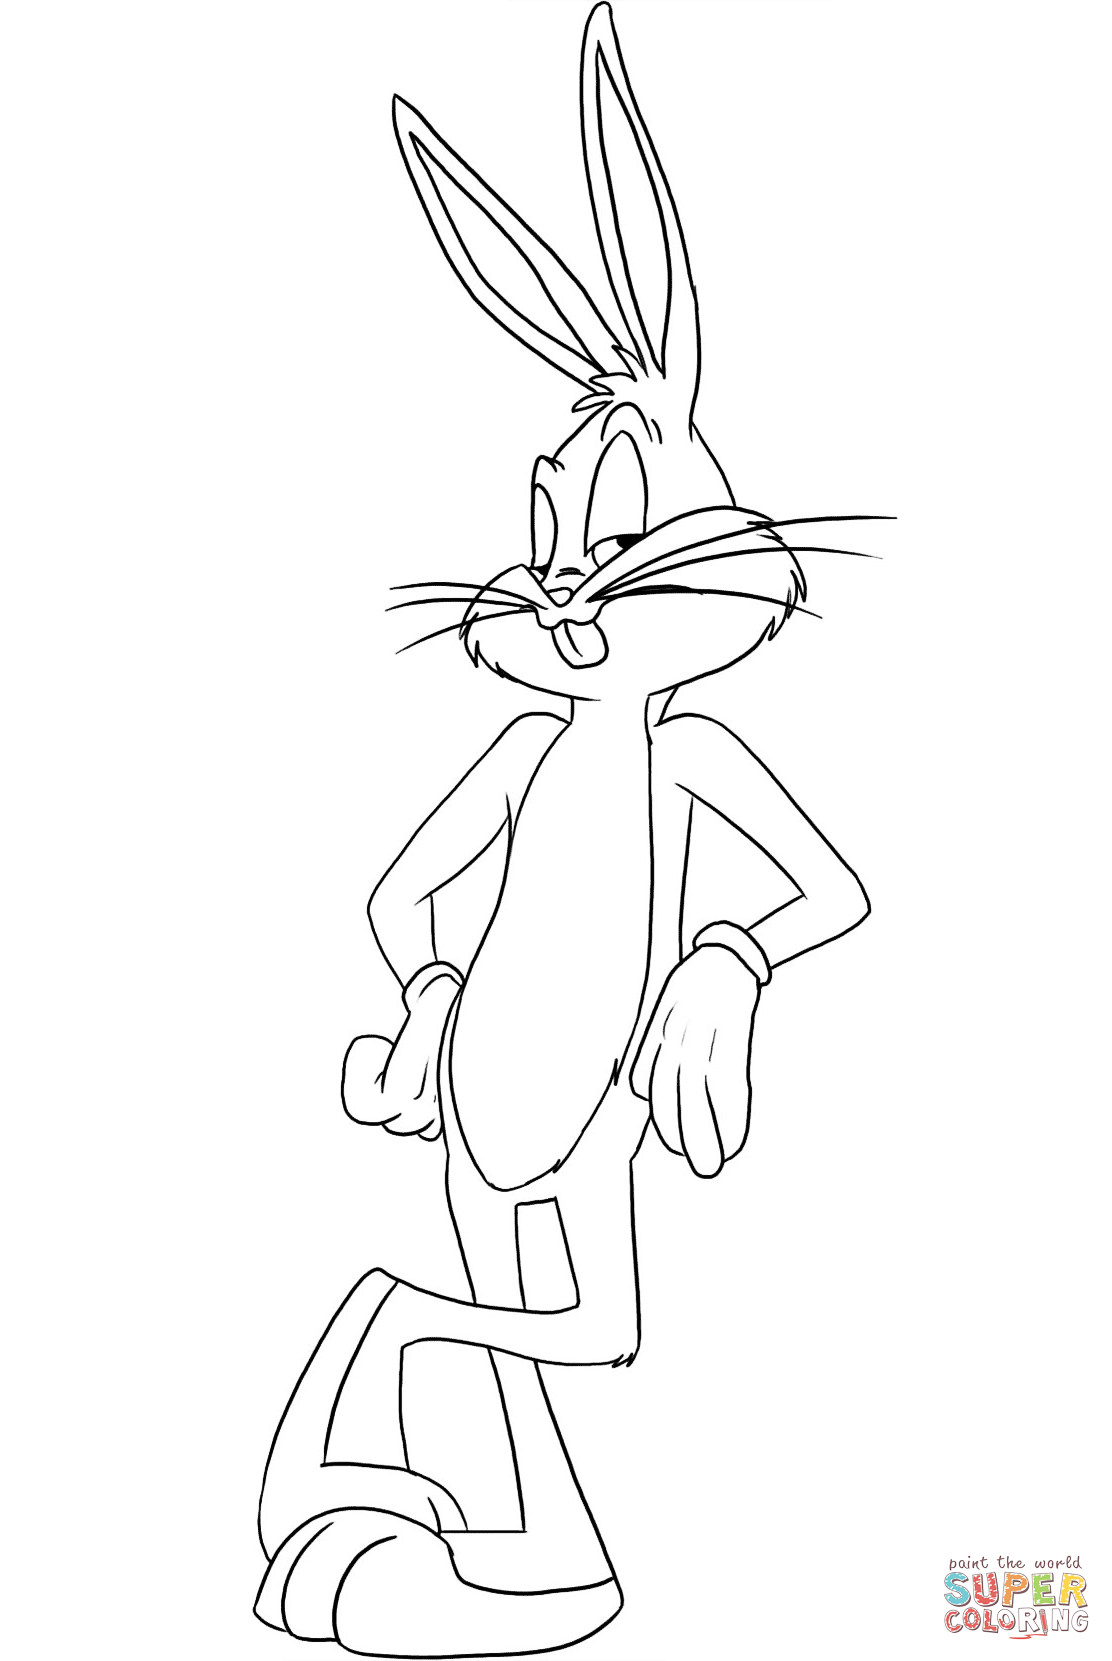 Bugs Bunny | My Art Work In 2019 | Pinterest | Bunny Coloring Pages - Free Printable Bugs Bunny Coloring Pages